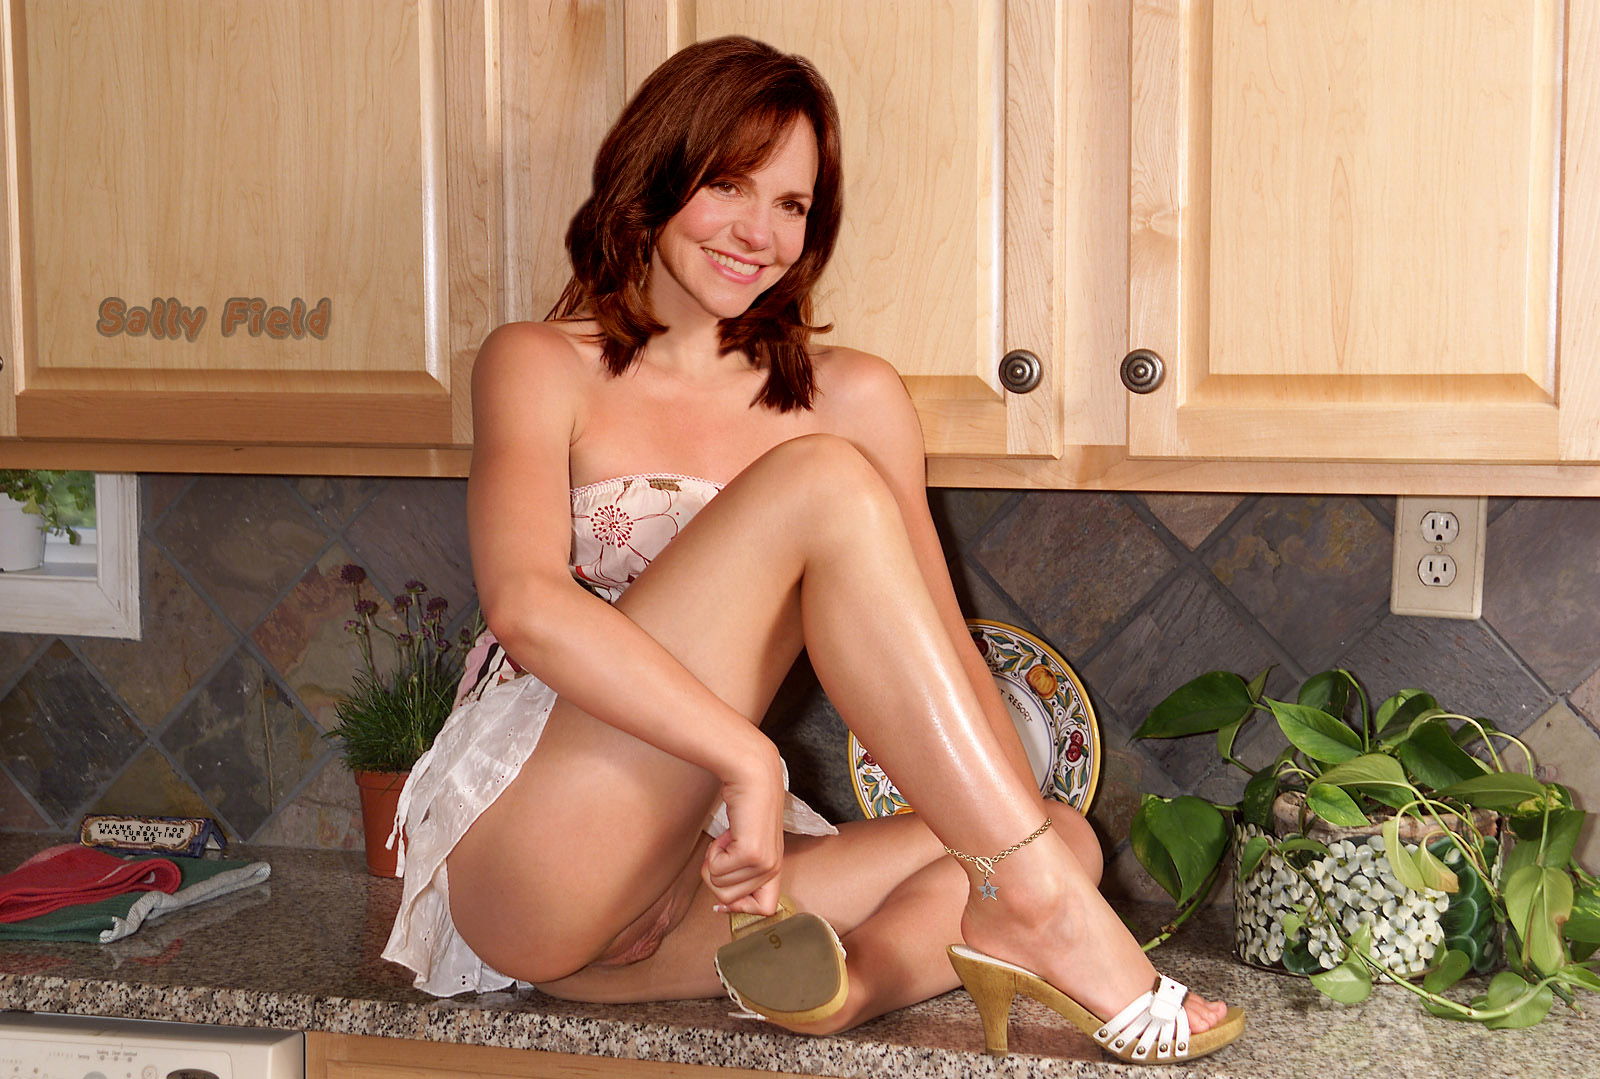 sally fake field nude